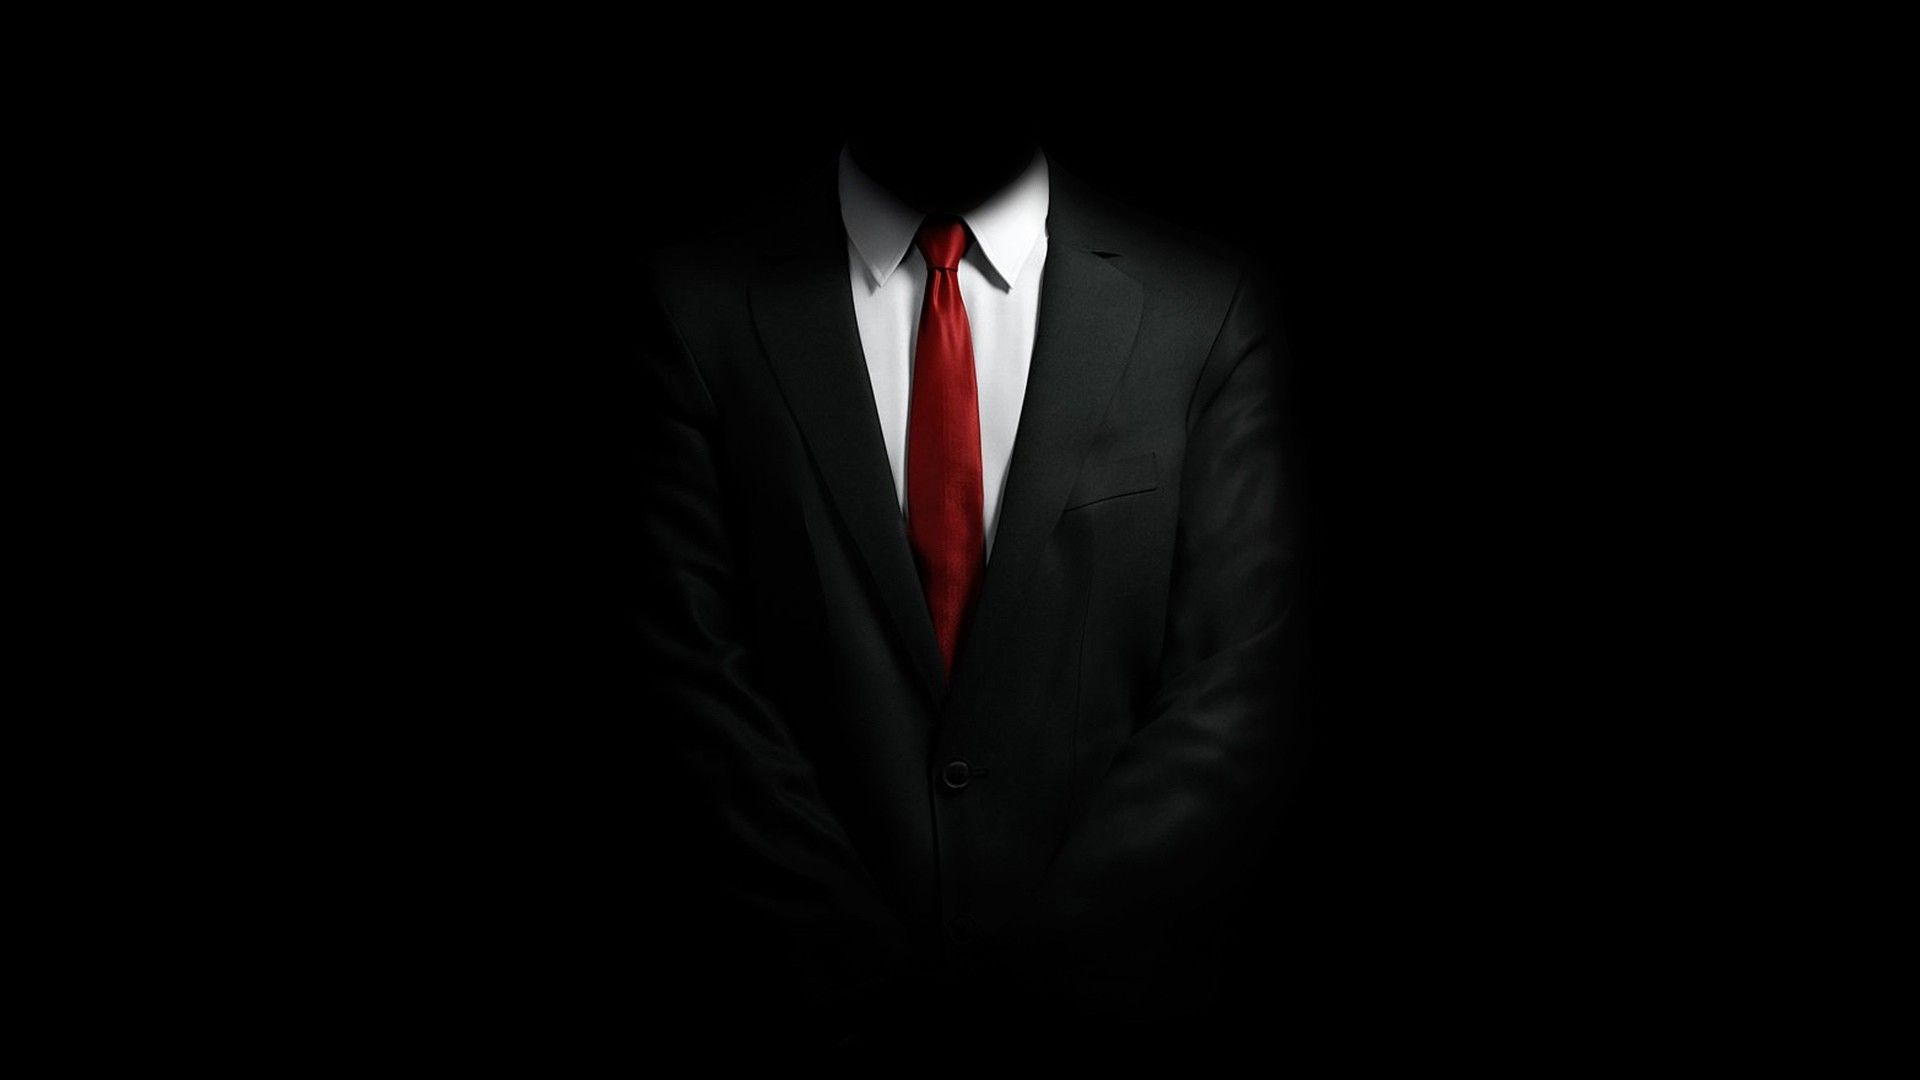 Hitman Minimalist 1920x1080 R Wallpapers Black Hd Wallpaper Black Wallpaper Android Wallpaper Black